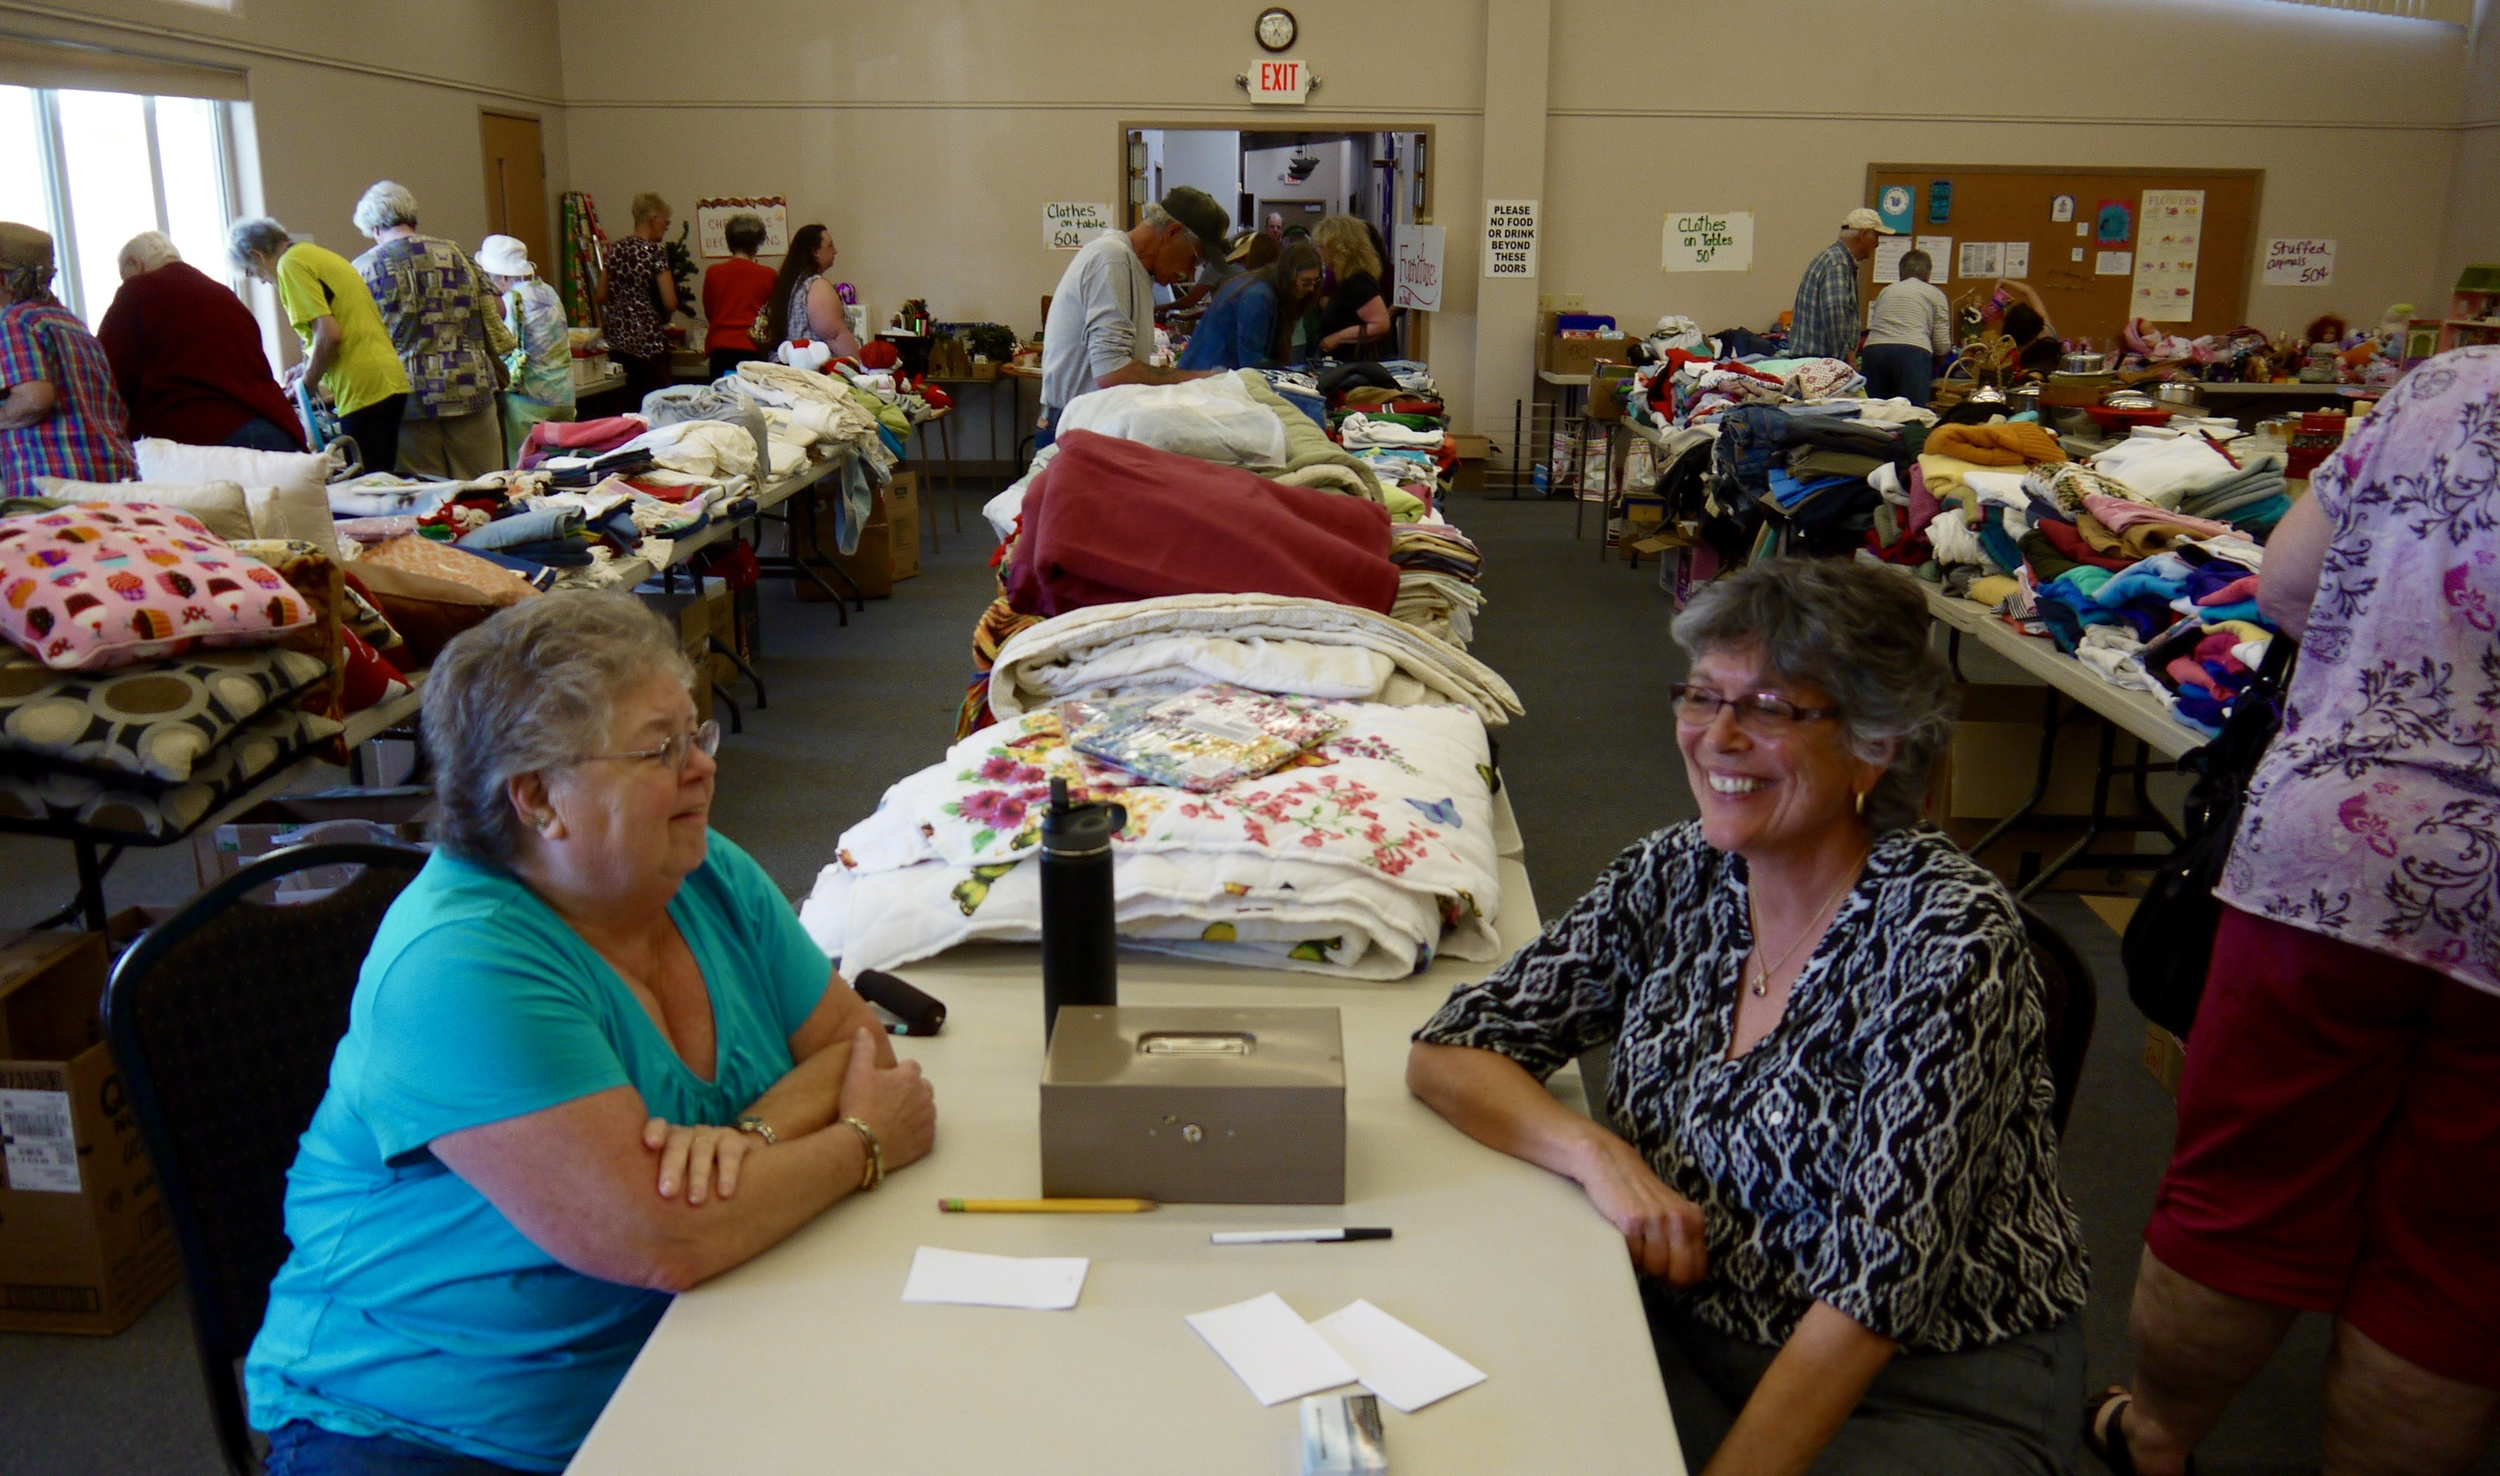 Our Rummage Sale is more than a fundraiser, it's also an opportunity for our congregation to engage with the community and each other.